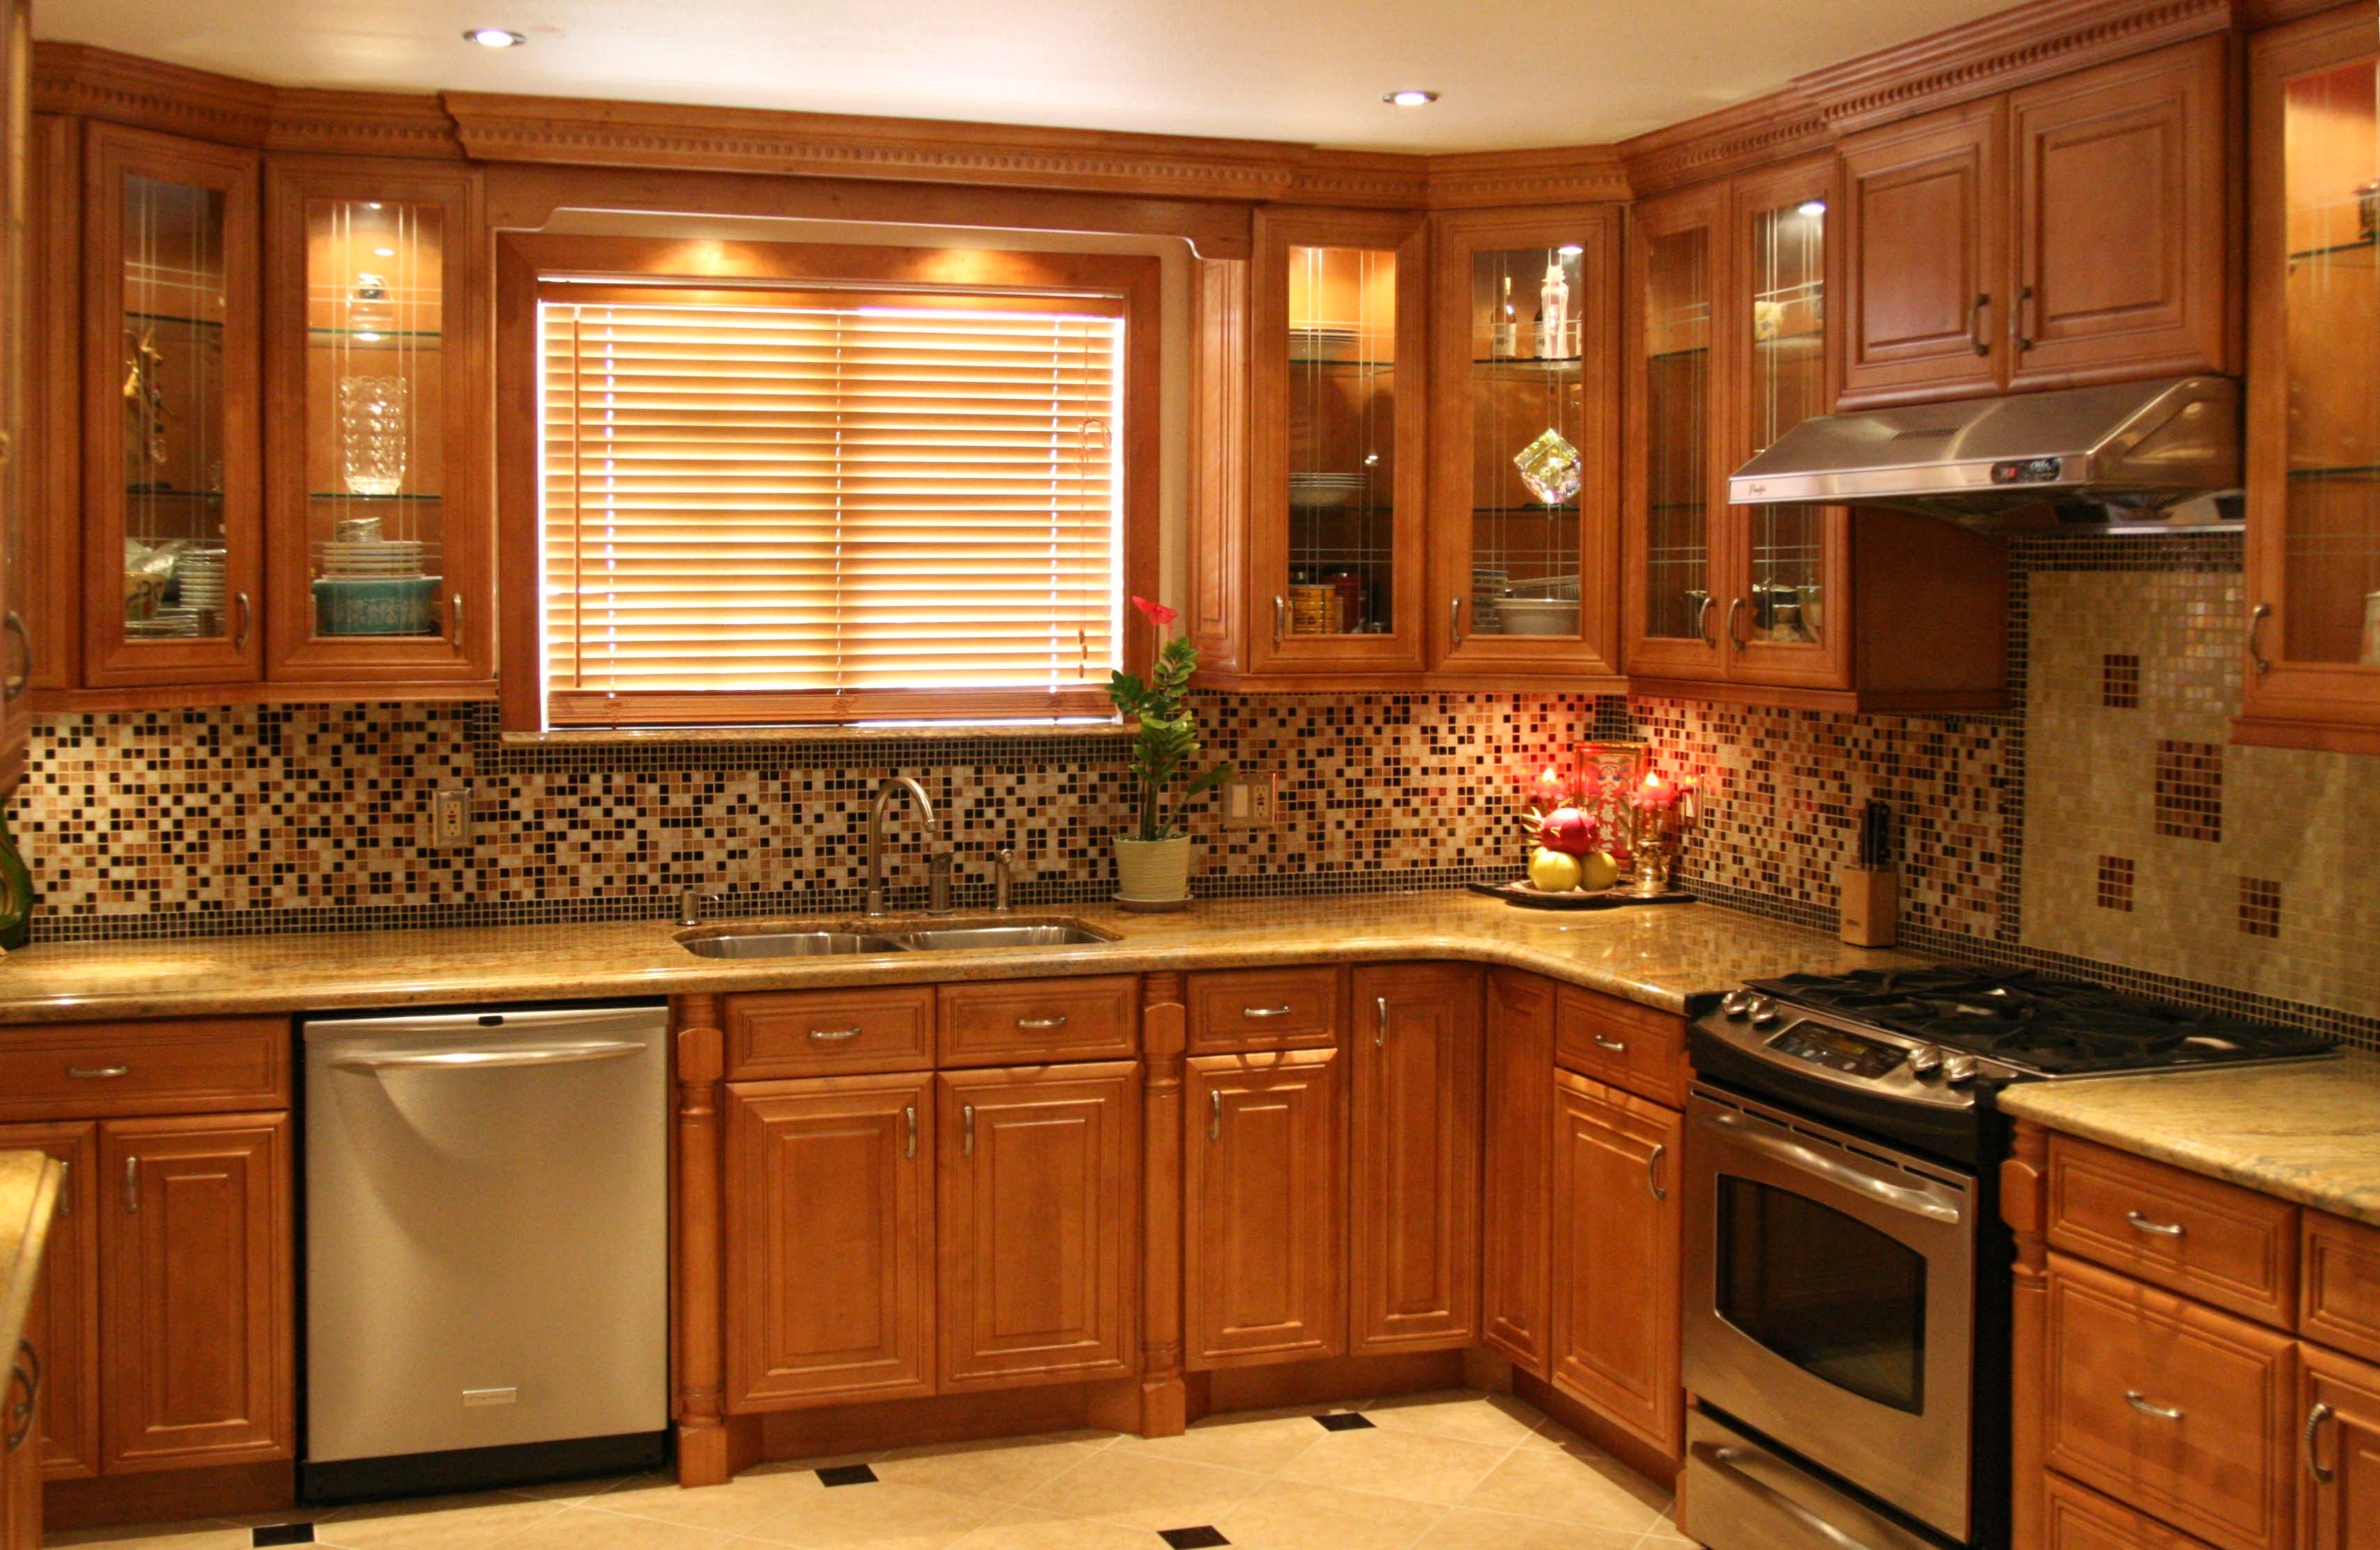 solid wood vs laminate kitchen cabinets solid wood kitchen cabinets Solid Wood vs Laminate Kitchen Cabinets